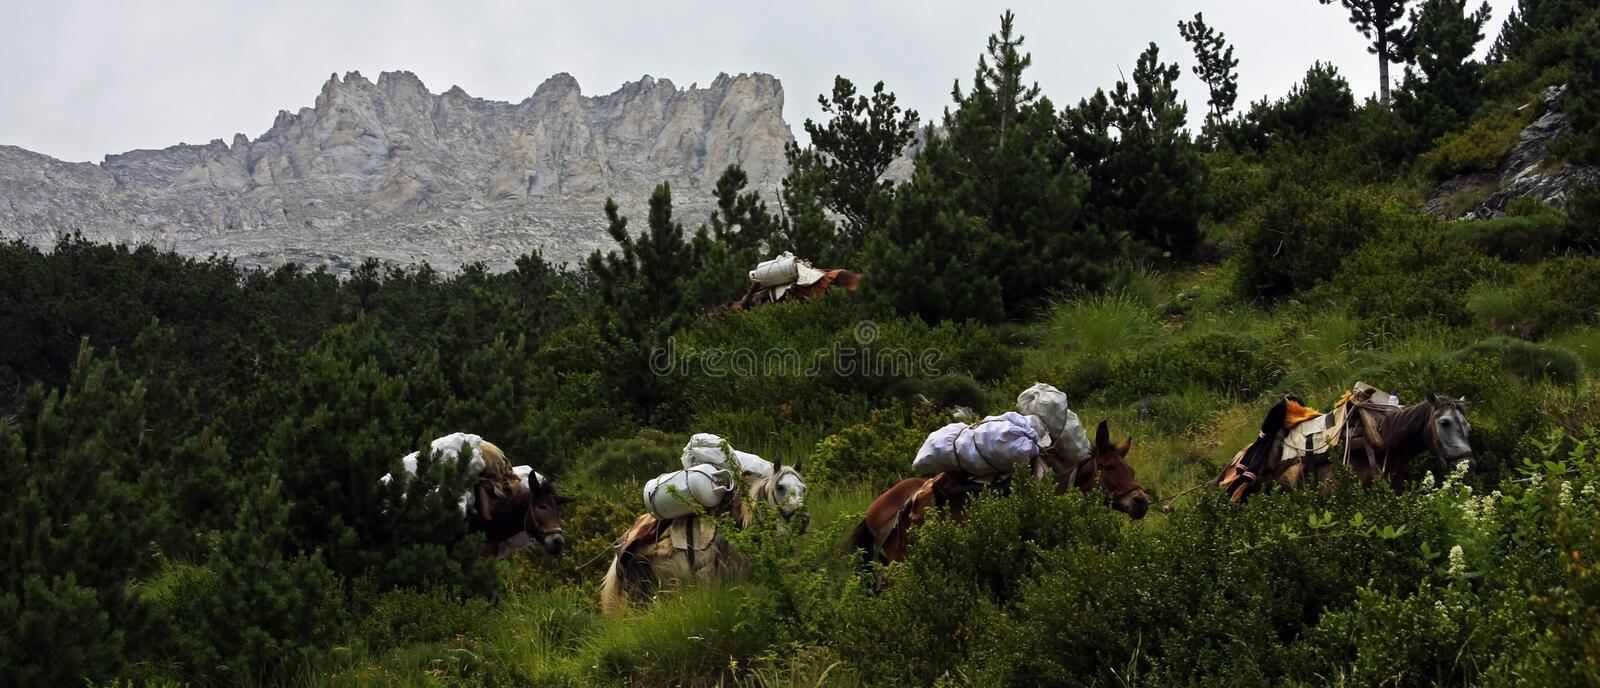 Horses carrying garbage off the Mount Olympus. Horses are used to carry down garbage from mount Olympus stock photography